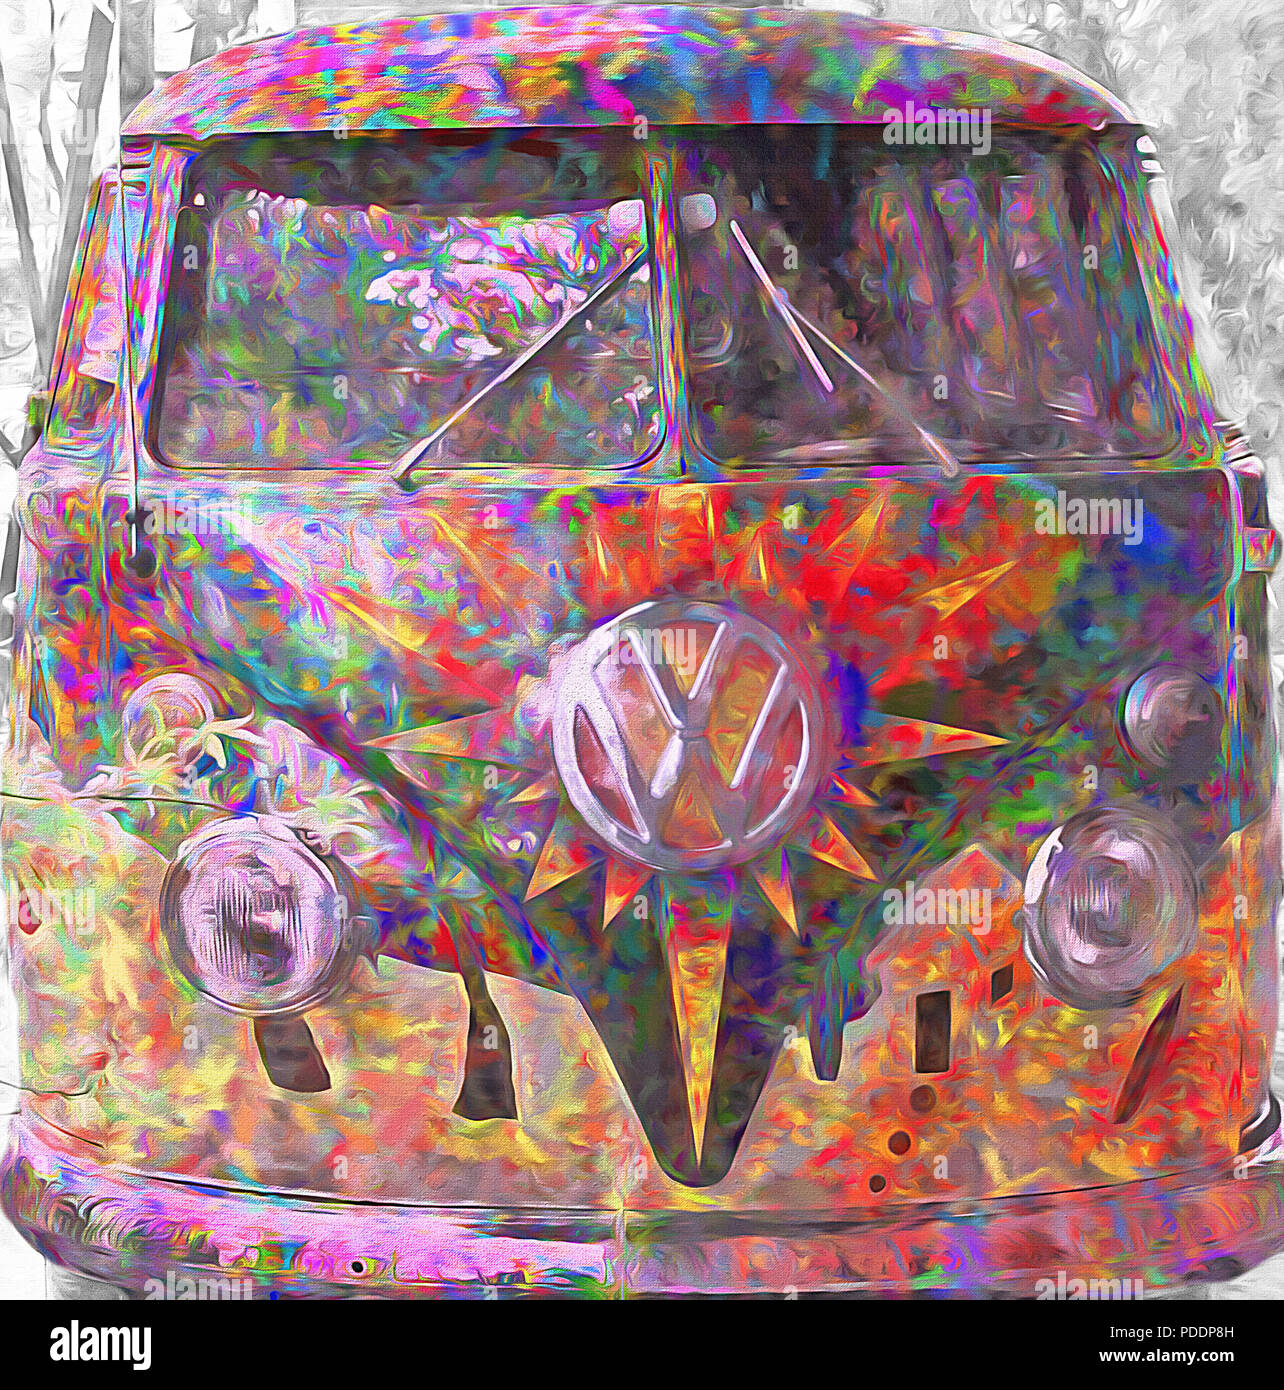 A VW bus is painted in a 'groovy' style and parked as an adornment in front of one of the park rides at the Lagoon Amusement Park in northern Utah. Th - Stock Image